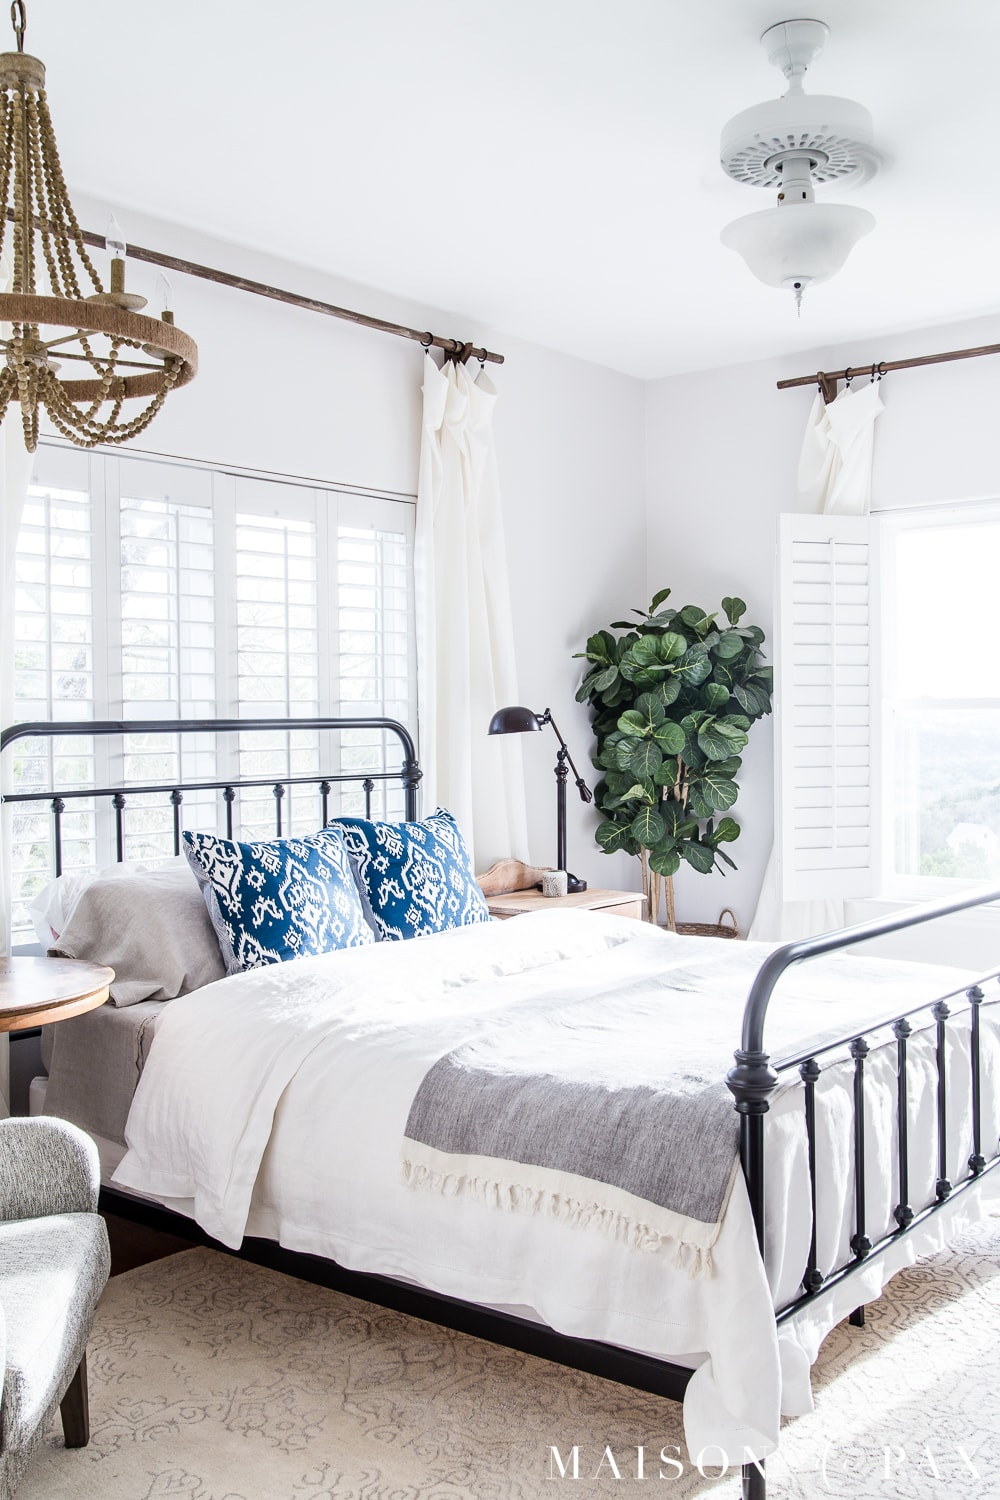 tip #1: start with a base of white bedding... Looking to add a seasonal touch to your bedroom?  Don't miss these incredibly simple master bedroom decorating ideas for spring! #springdecor #springbedroom #nightstand #modernfarmhouse